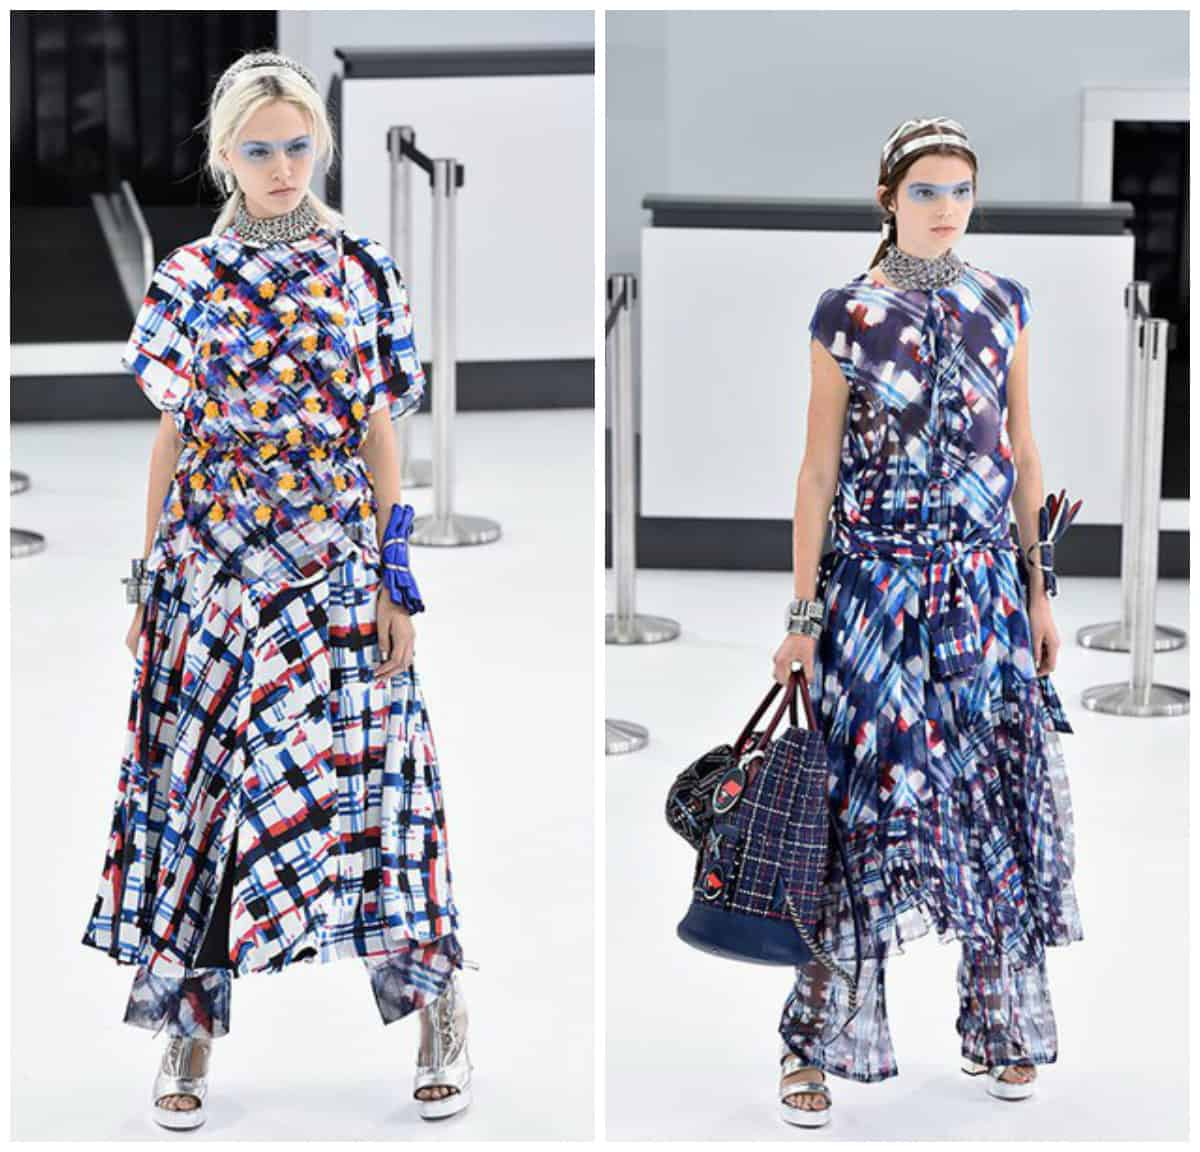 Paris-Fashion-Week-Chanel-show-Spring-Summer-2016-2